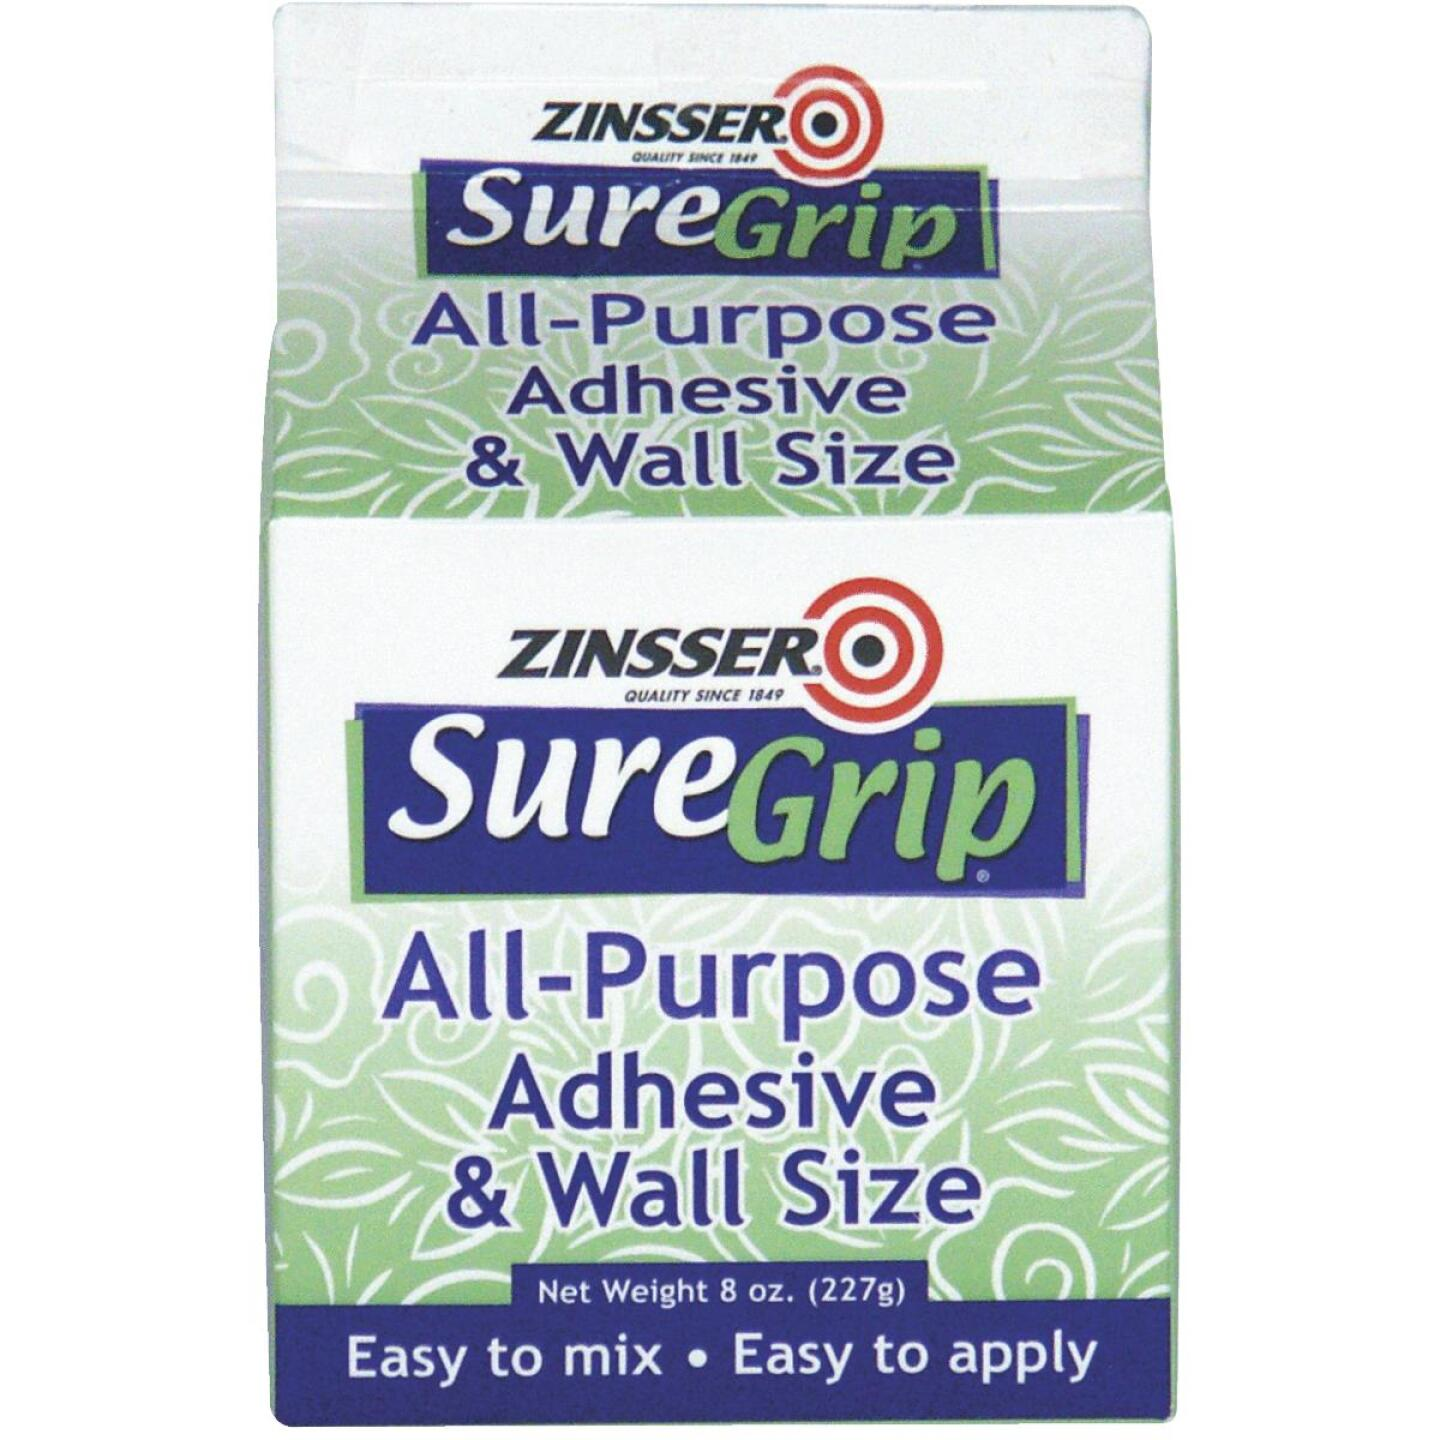 SureGrip 8 Oz. All-Purpose Adhesive And Wall Size Image 1